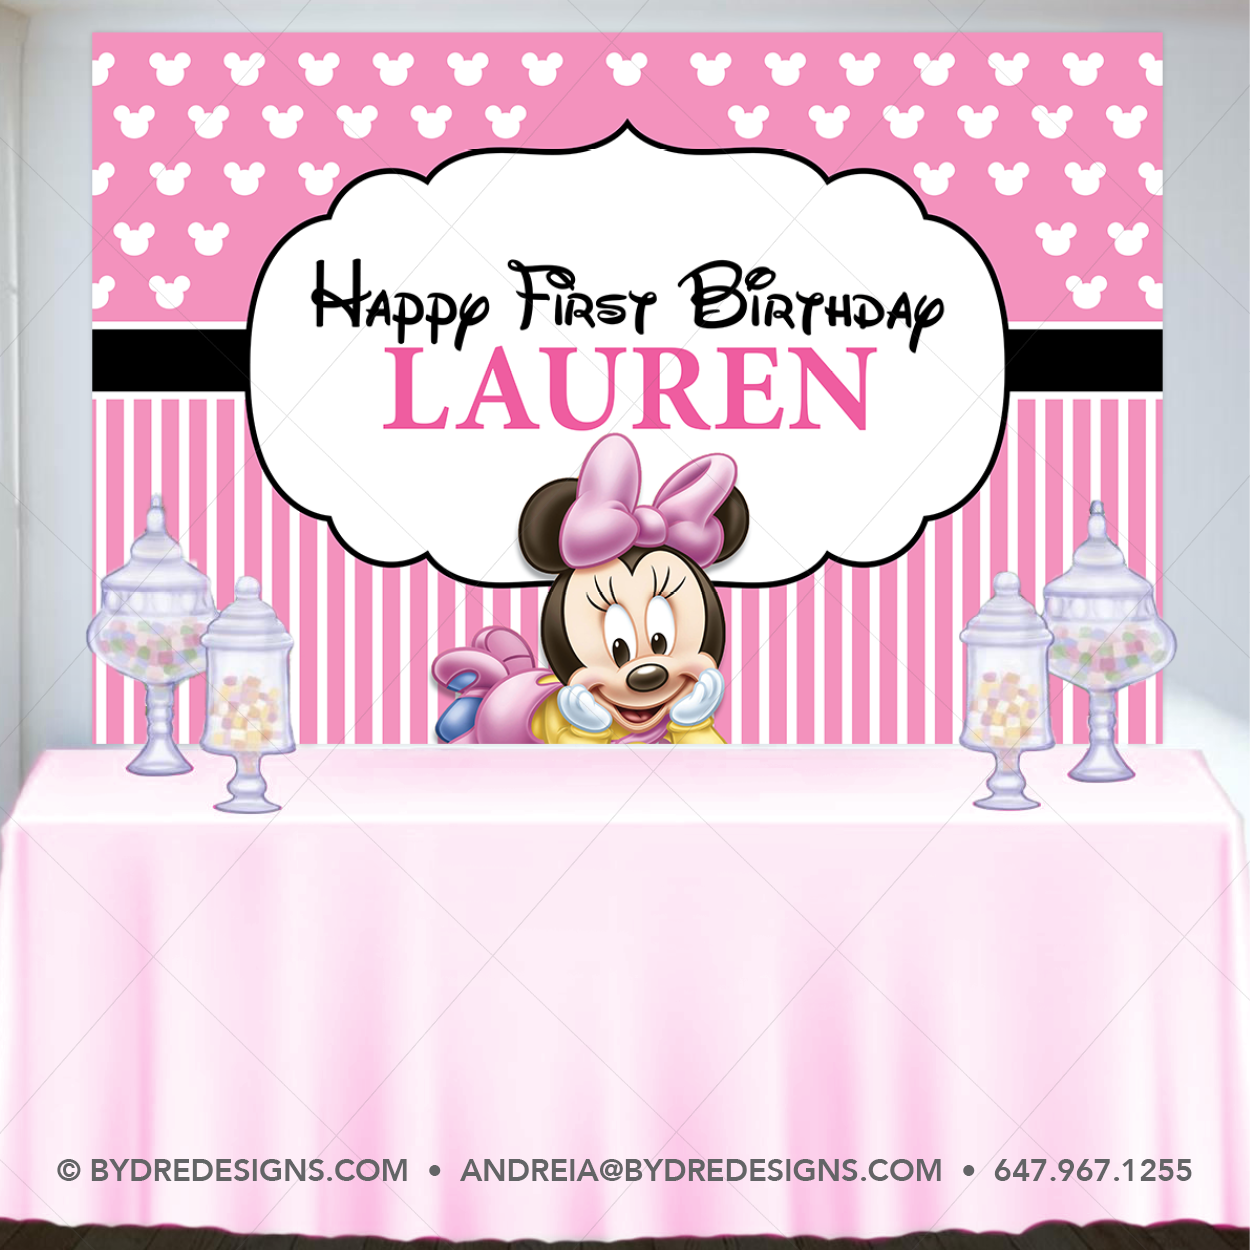 Baby Minnie Mouse Backdrop Minnie Mouse Banner Minnie Mouse